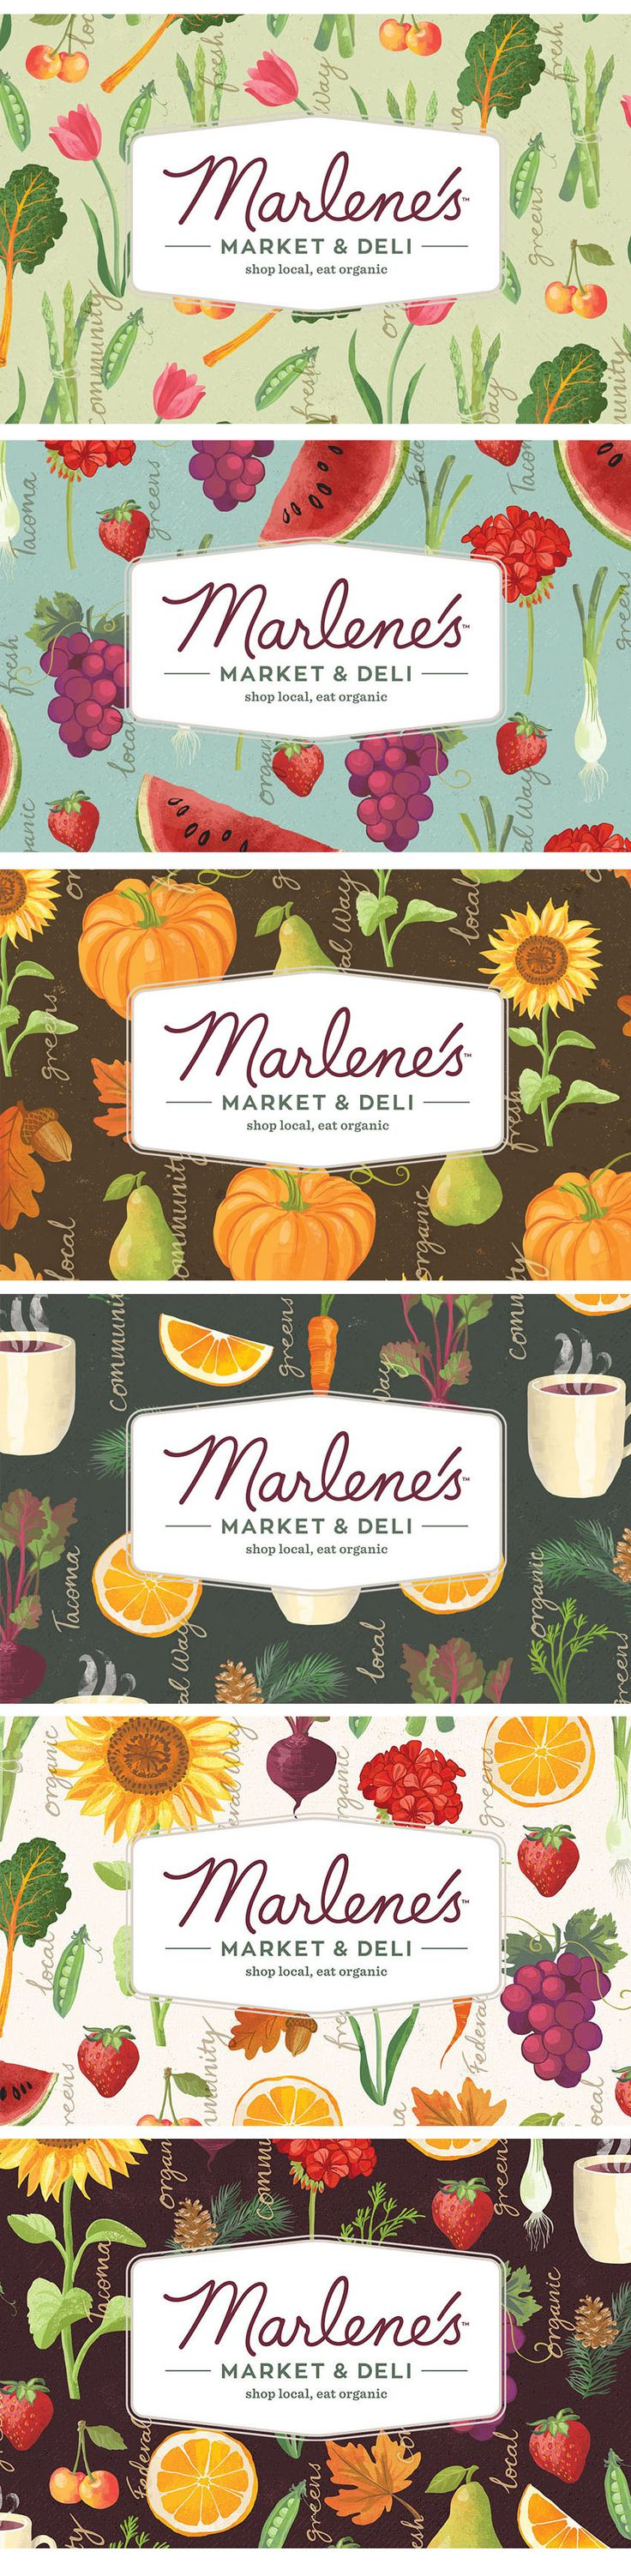 Last summer I was contacted by Seattle based design agency Modern Species  about a rebranding project for a organic market in Tacoma. They had seen my  foodie illustrations on Pinterest and felt that my approach would be  perfect for their client. Marlenes Market and Deli is a natural food store  that offers organic, sustainably produced foods, beauty care and household  products that was established in 1976, with two stores.  We started with a Skype call to discuss the specific requirements…